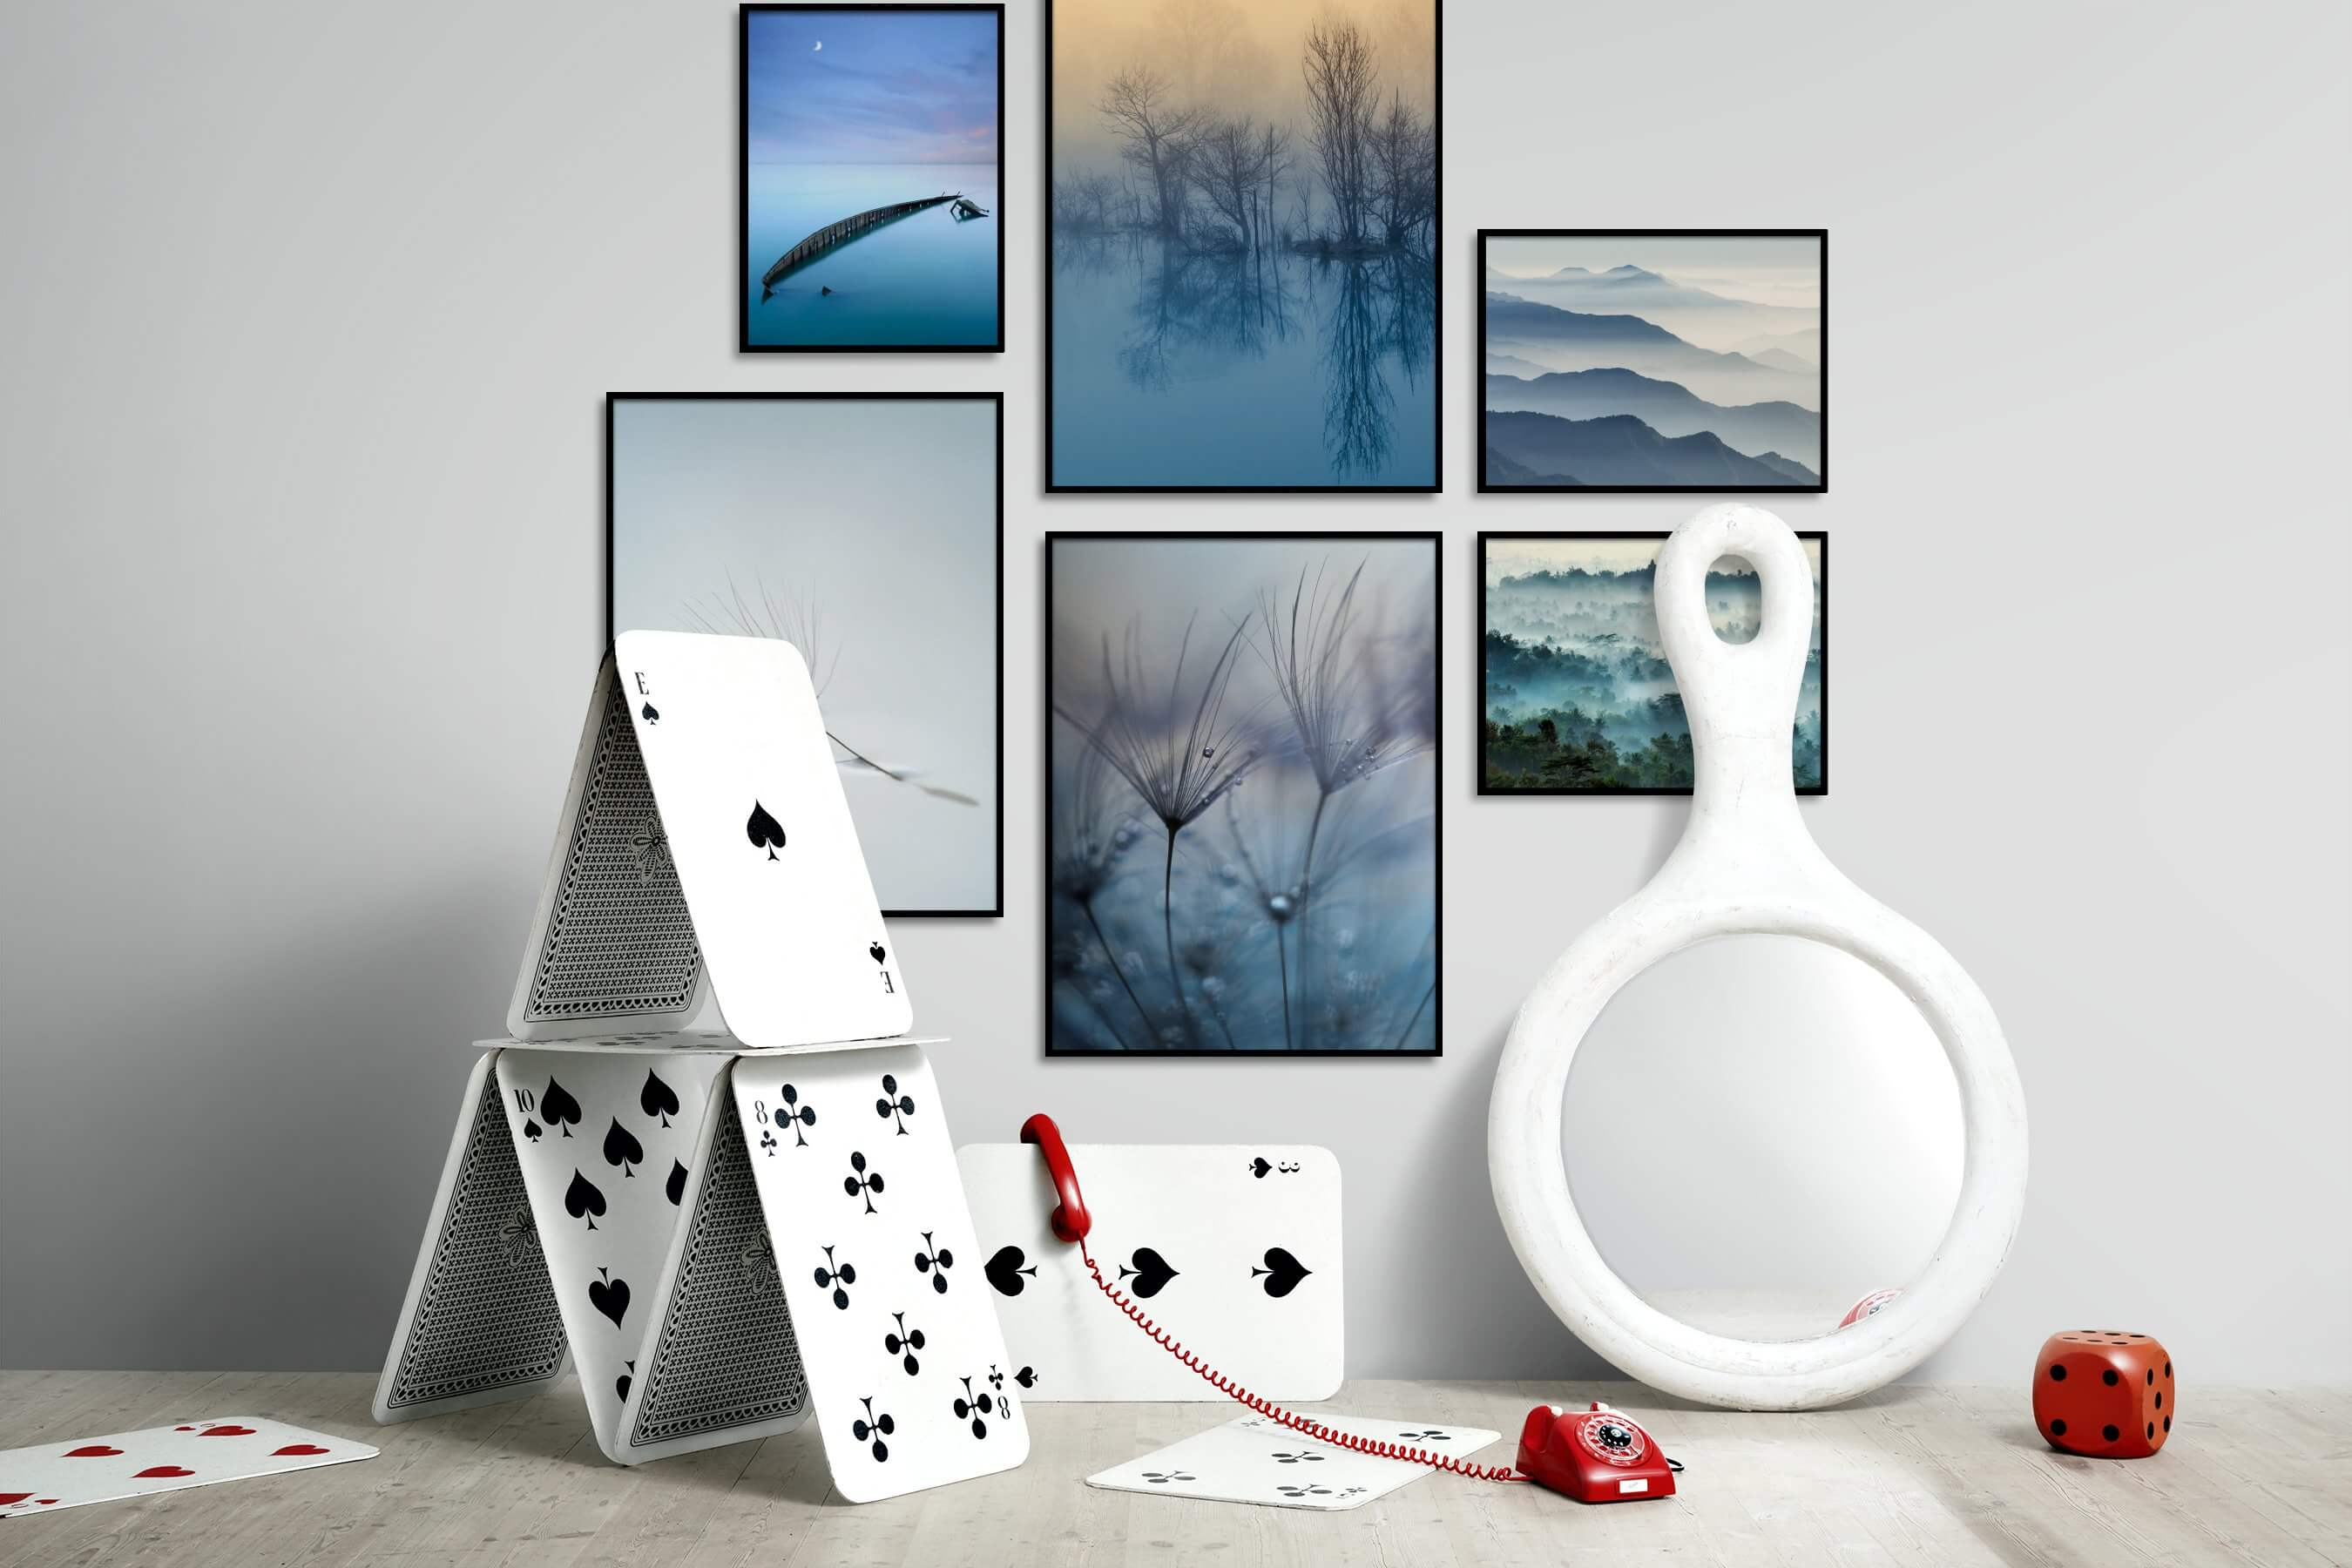 Gallery wall idea with six framed pictures arranged on a wall depicting For the Moderate, Beach & Water, Mindfulness, Nature, For the Minimalist, and Flowers & Plants